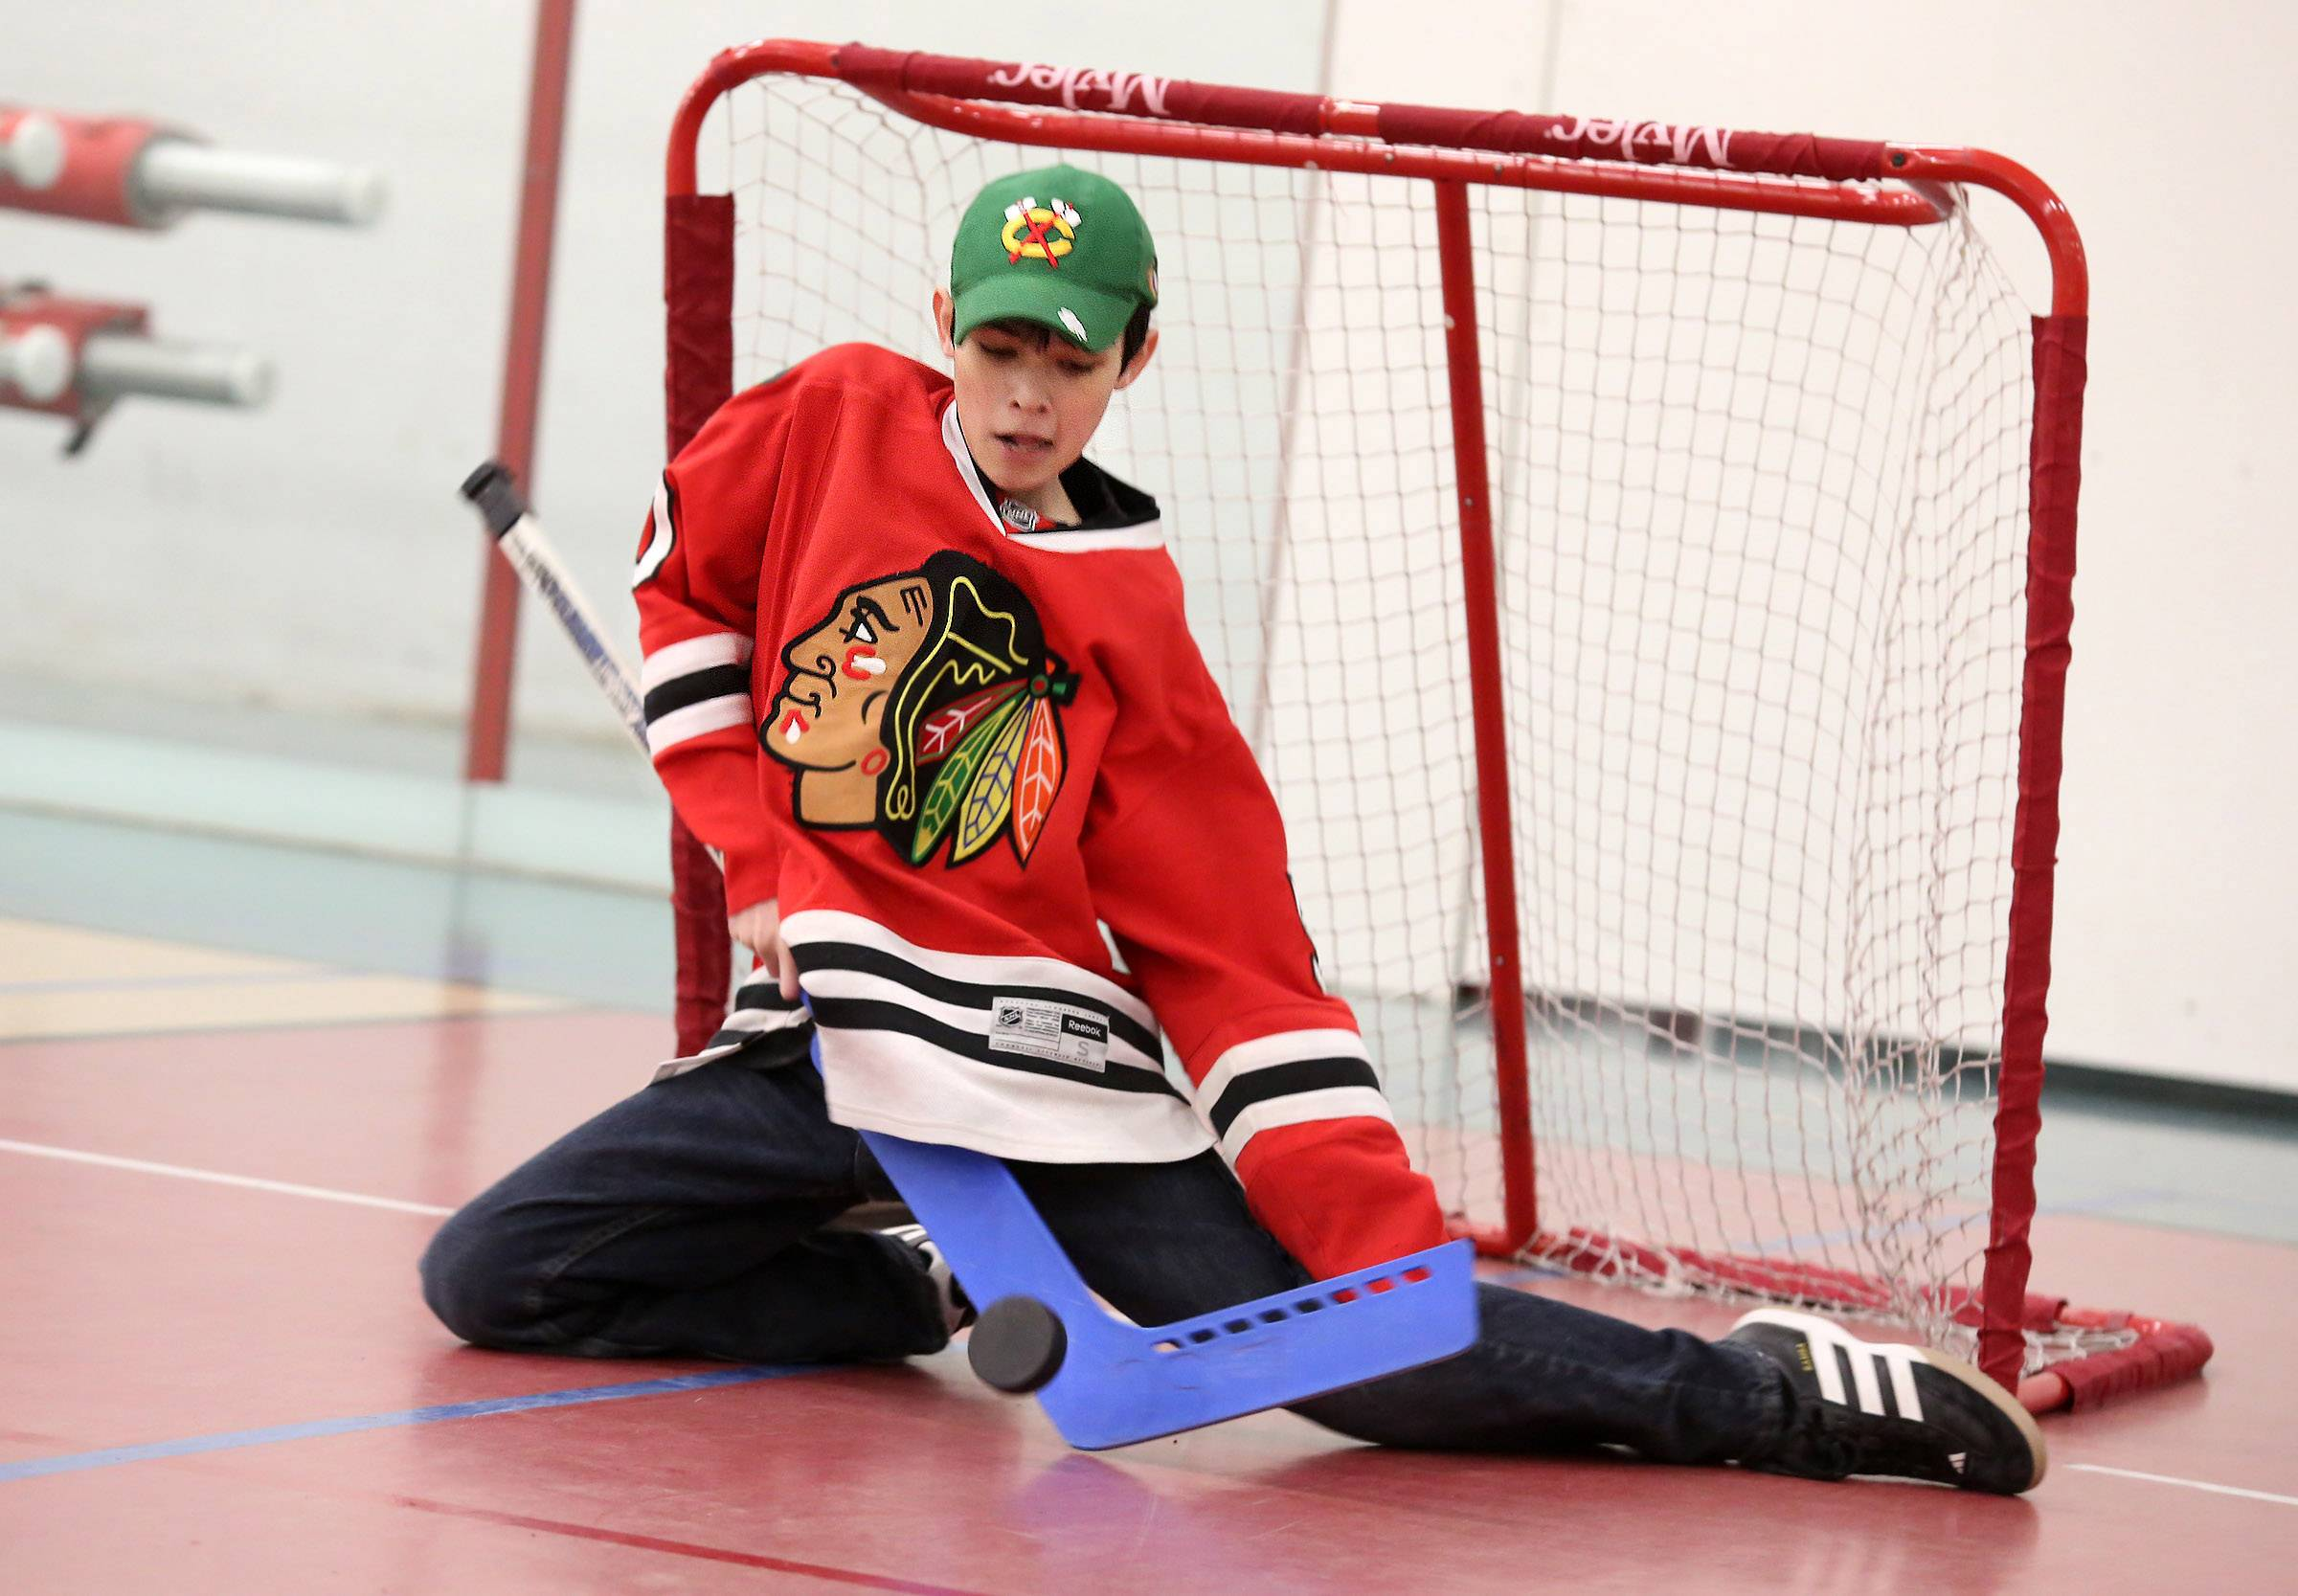 Ethan Neir, 13, of Libertyville, blocks a shot on goal during the Chicago Blackhawks Roadwatch Party on Friday at the Libertyville Sports Complex.